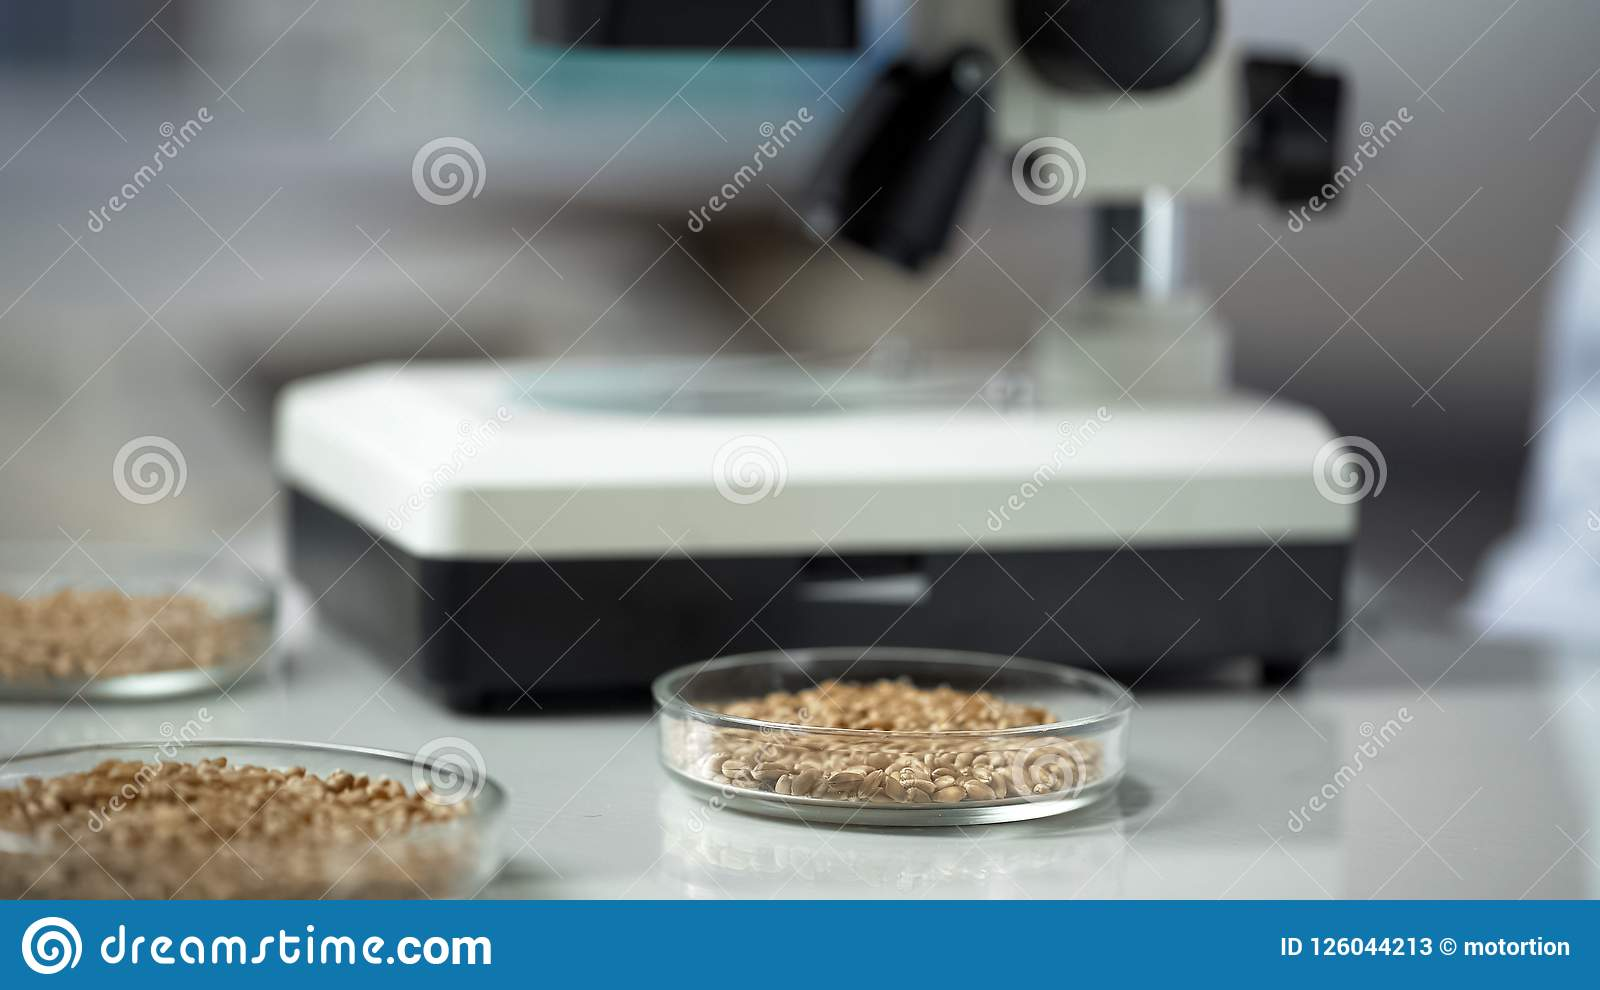 Grains in laboratory dishes on table, raw material for healthy food production